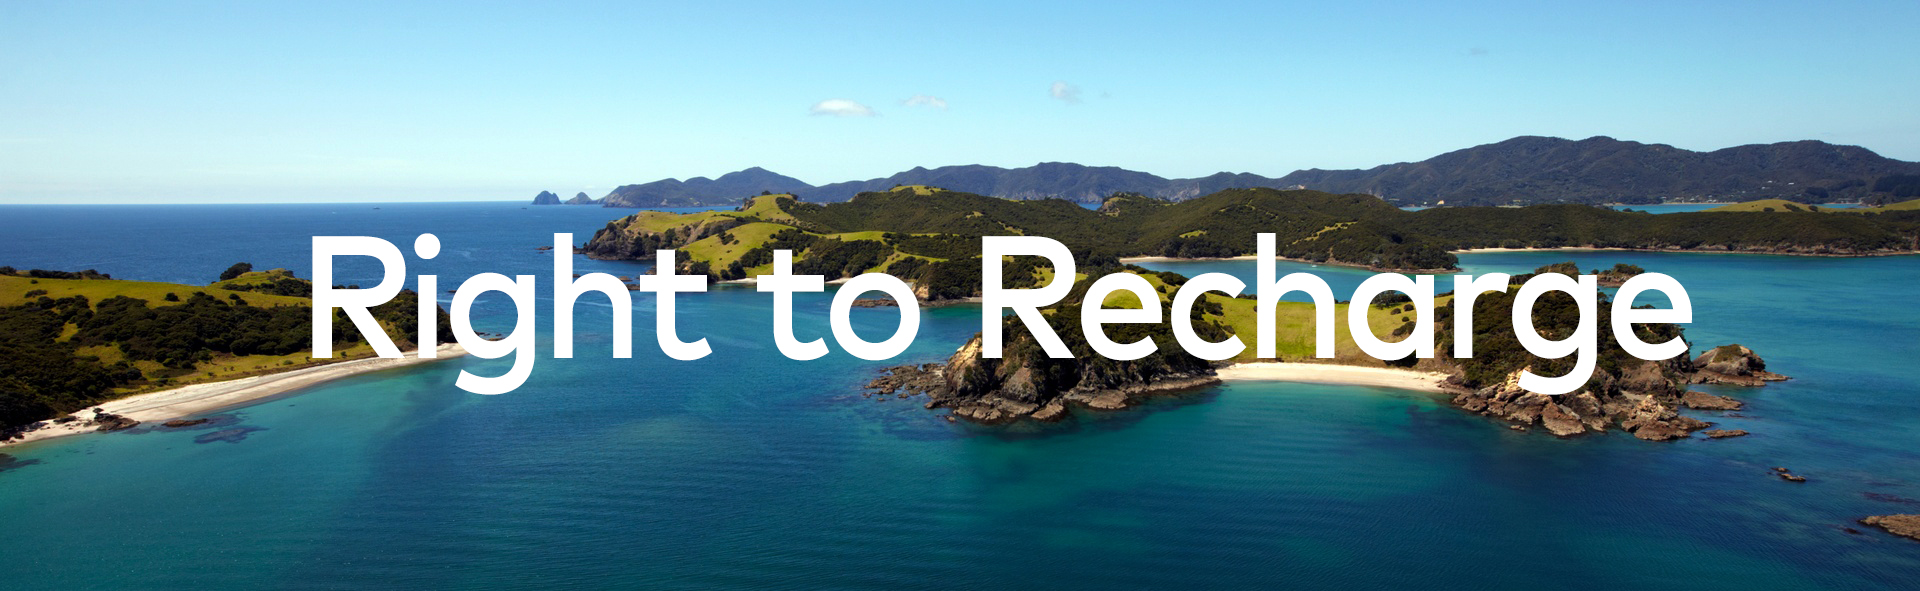 Right to Recharge Bay of Islands